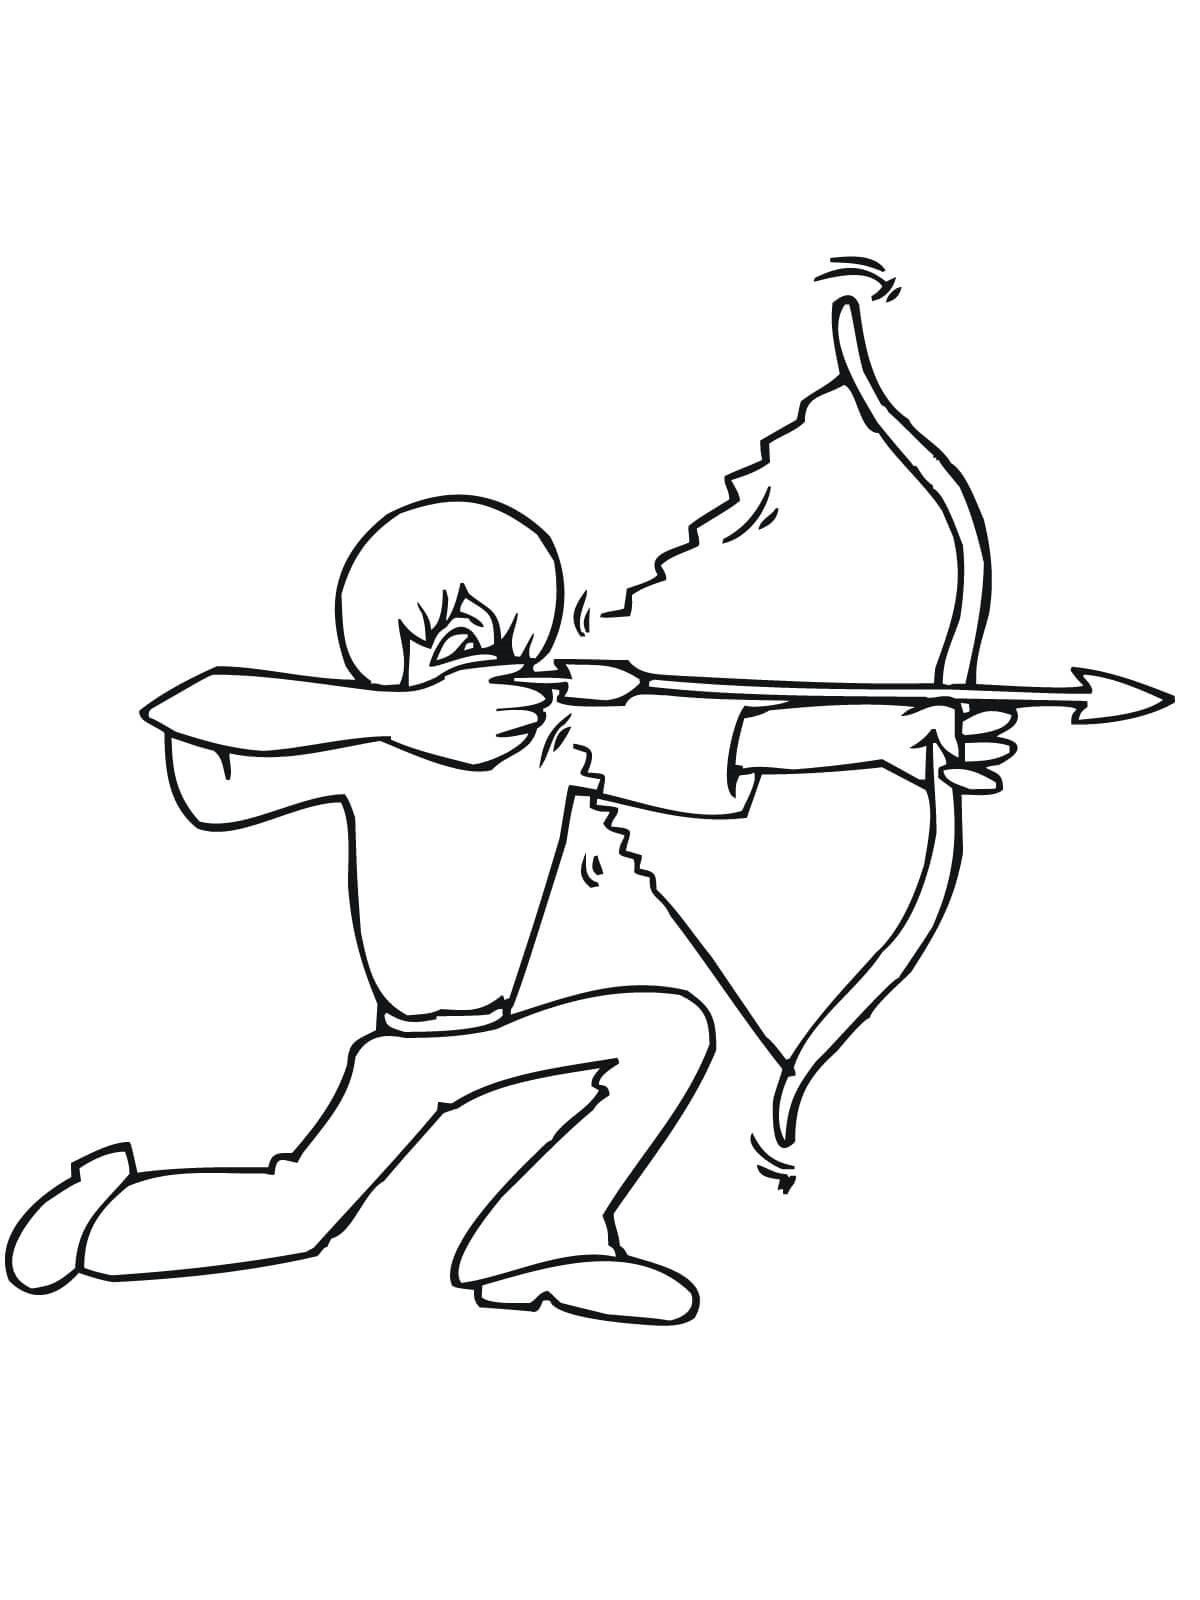 The Boy Holding A Bow